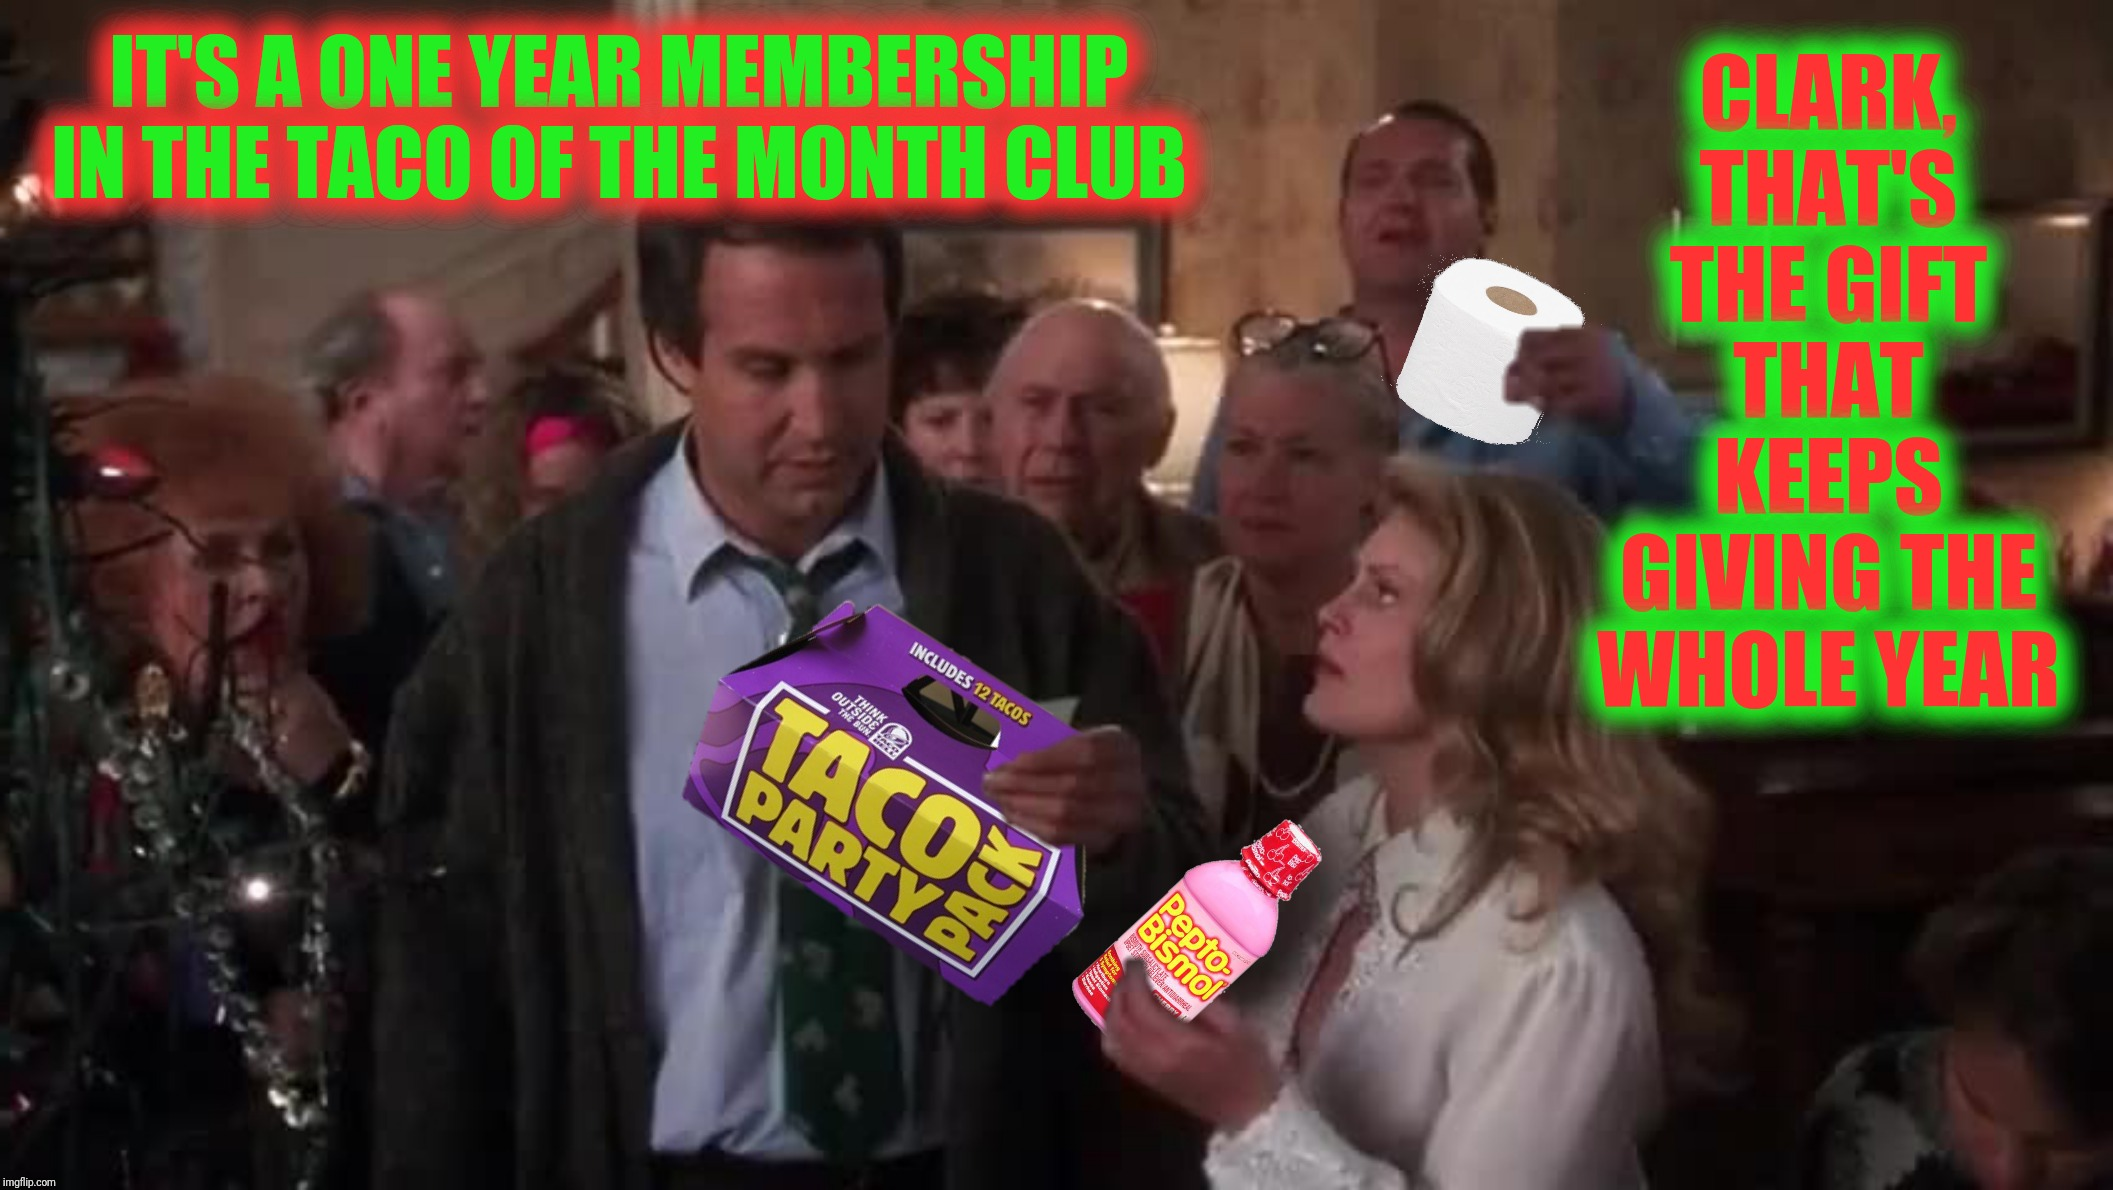 Bad Photoshop Sunday presents:  Not so sure we're gonna have a white Christmas? | IT'S A ONE YEAR MEMBERSHIP IN THE TACO OF THE MONTH CLUB CLARK, THAT'S THE GIFT THAT KEEPS GIVING THE WHOLE YEAR | image tagged in bad photoshop sunday,christmas vacation,taco bell,pepto bismol,toilet paper | made w/ Imgflip meme maker